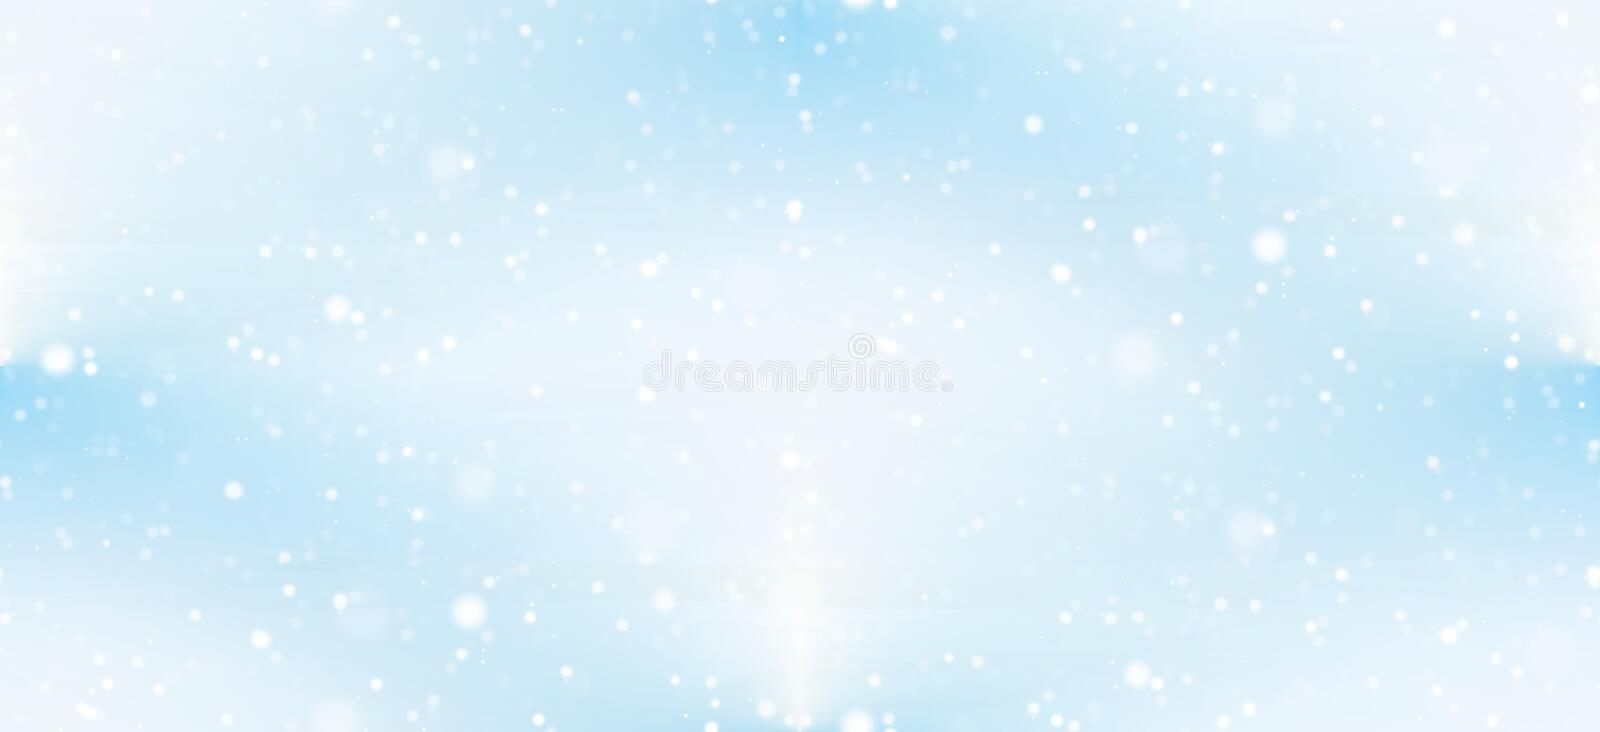 Seamless light blue sky background with snowflakes vector illustration